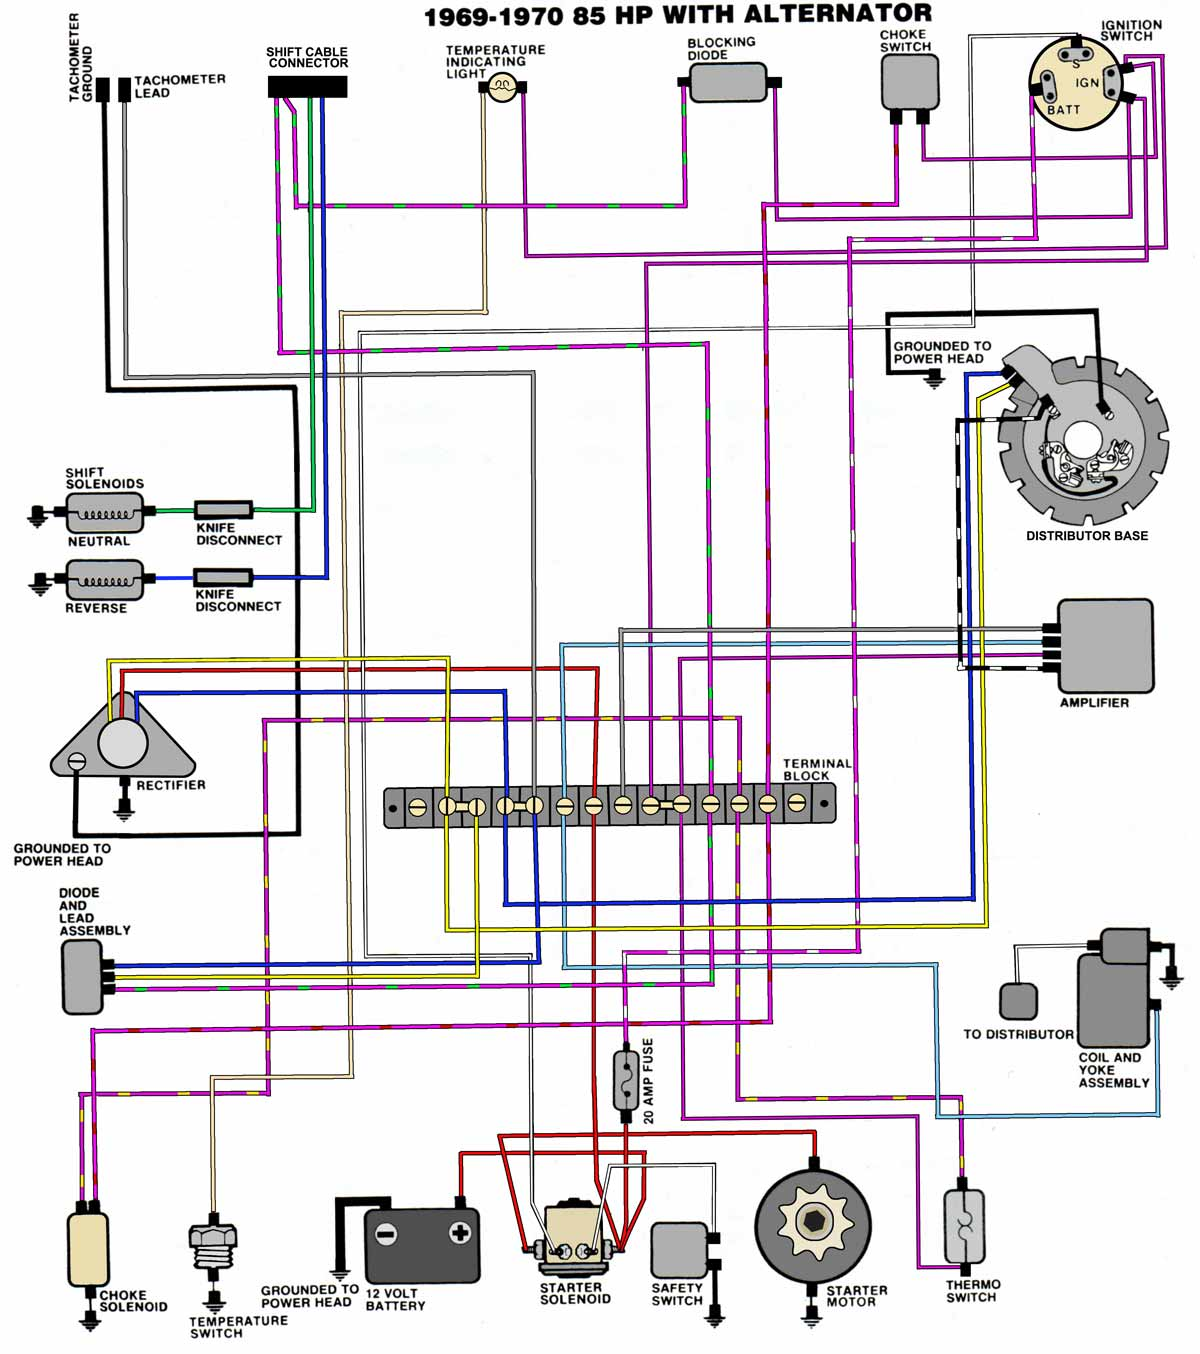 69_70_V4 suzuki 115 outboard wiring diagram efcaviation com suzuki outboard ignition switch wiring diagram at eliteediting.co